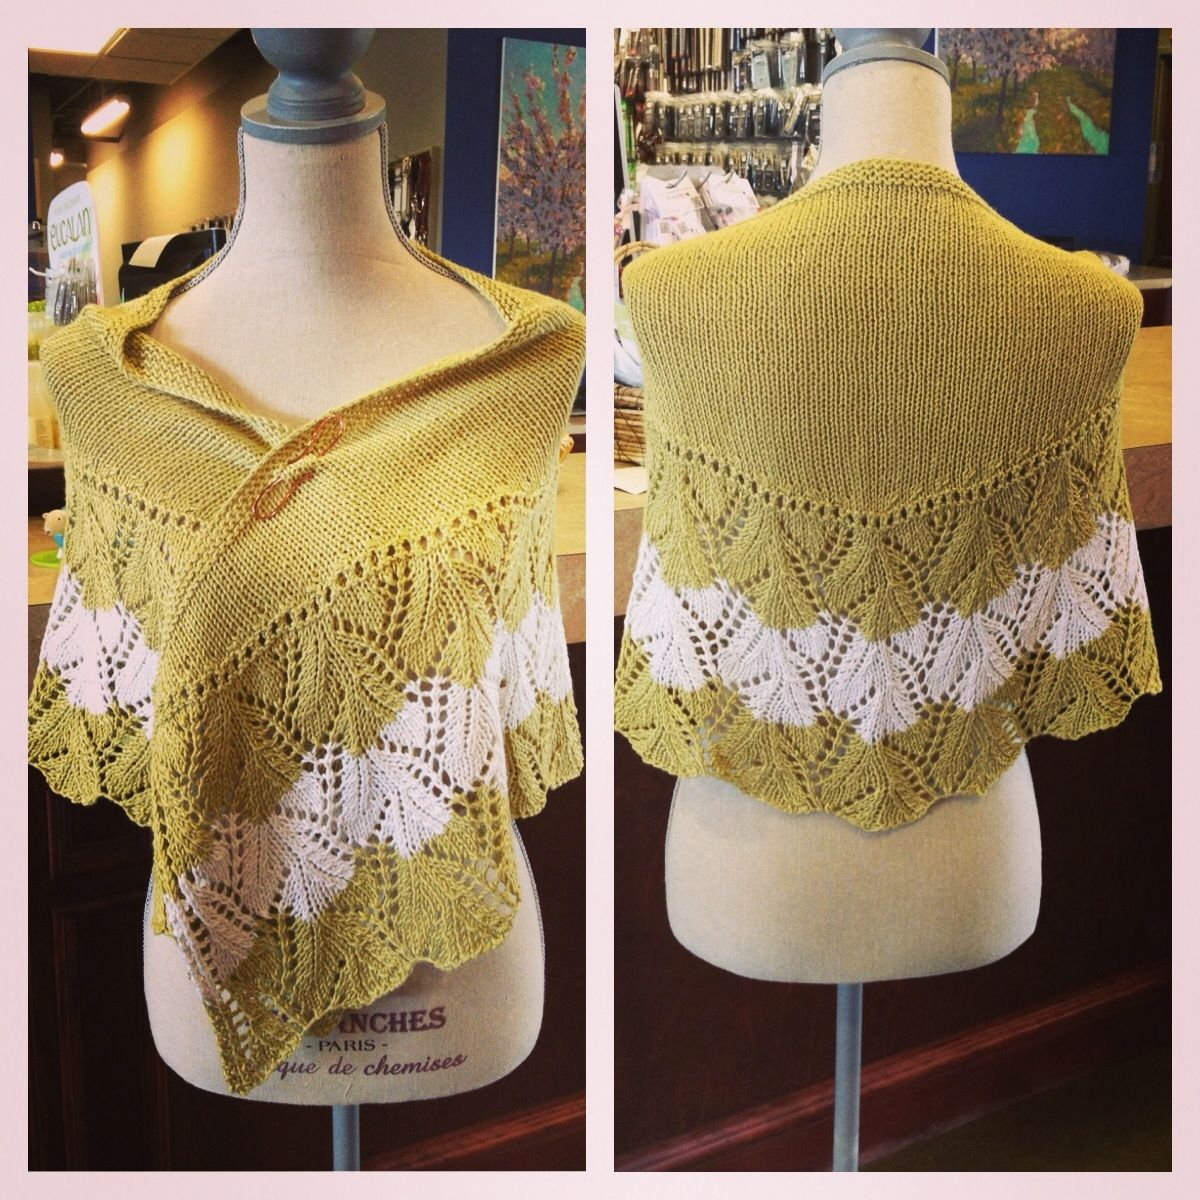 Lovely lace shawl knit out of a deliciously drapey wool and bamboo blend. #personalthreadsboutique